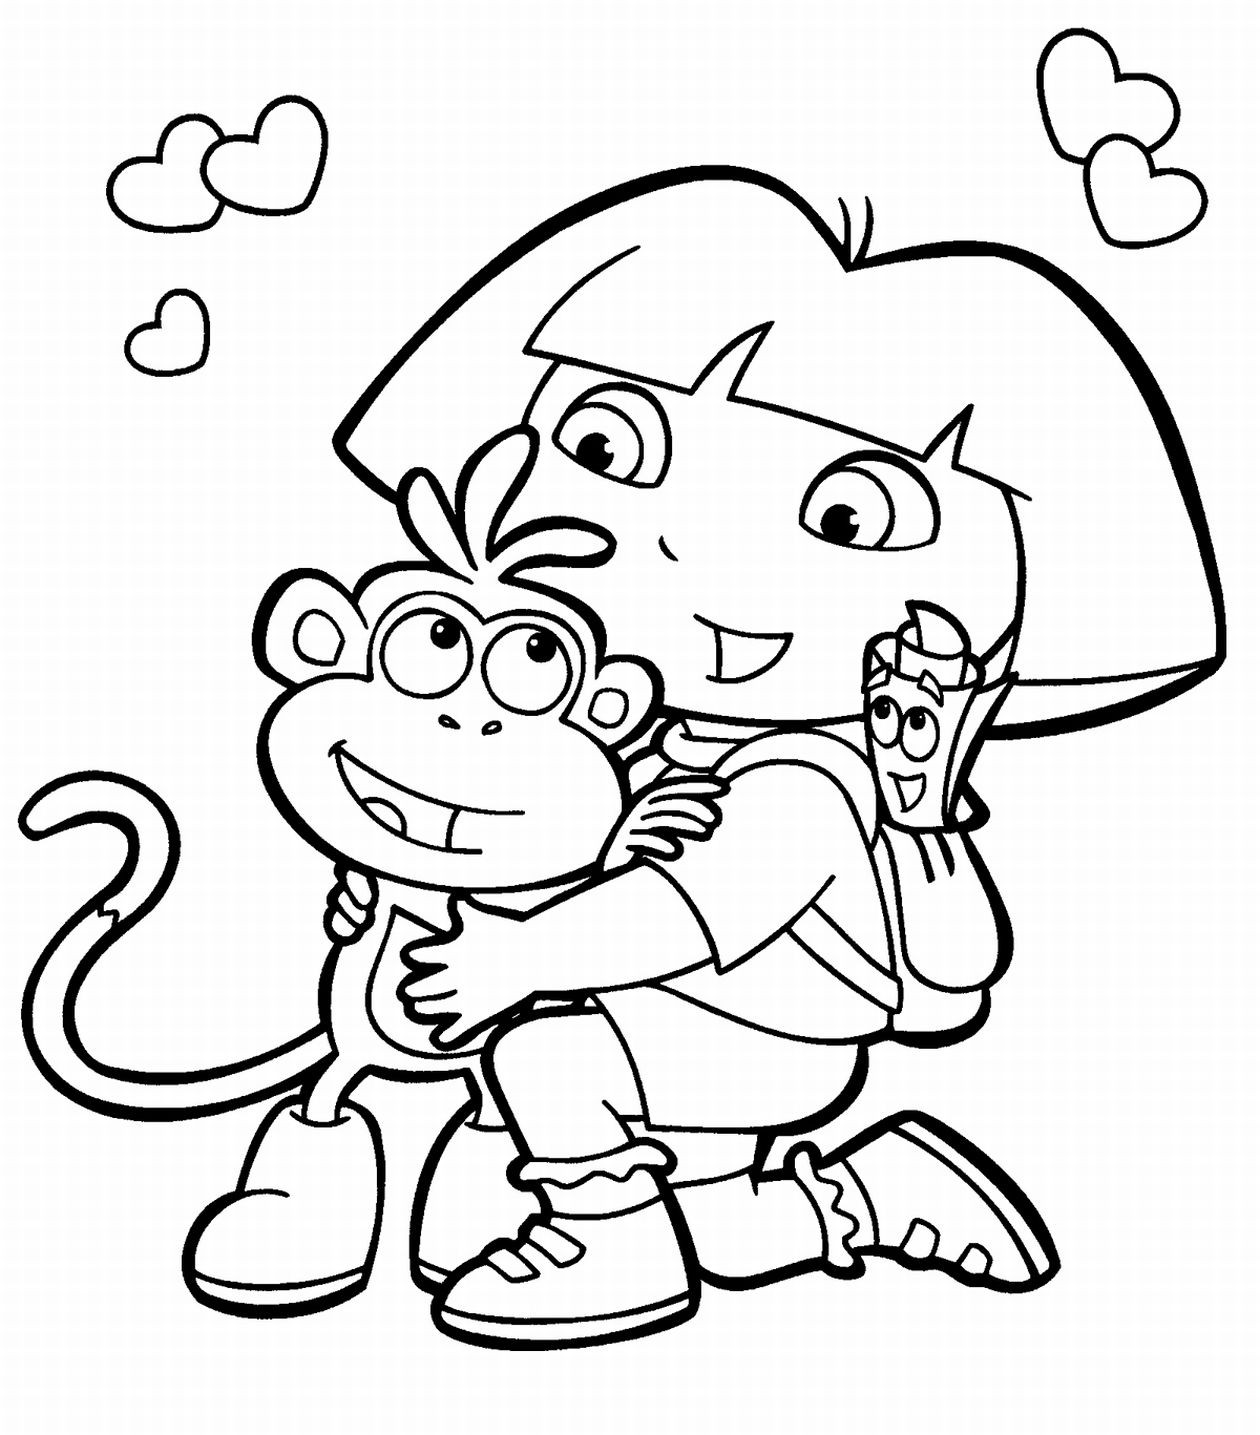 Girl And Boy Drawing For Kids at GetDrawings.com | Free for personal ...